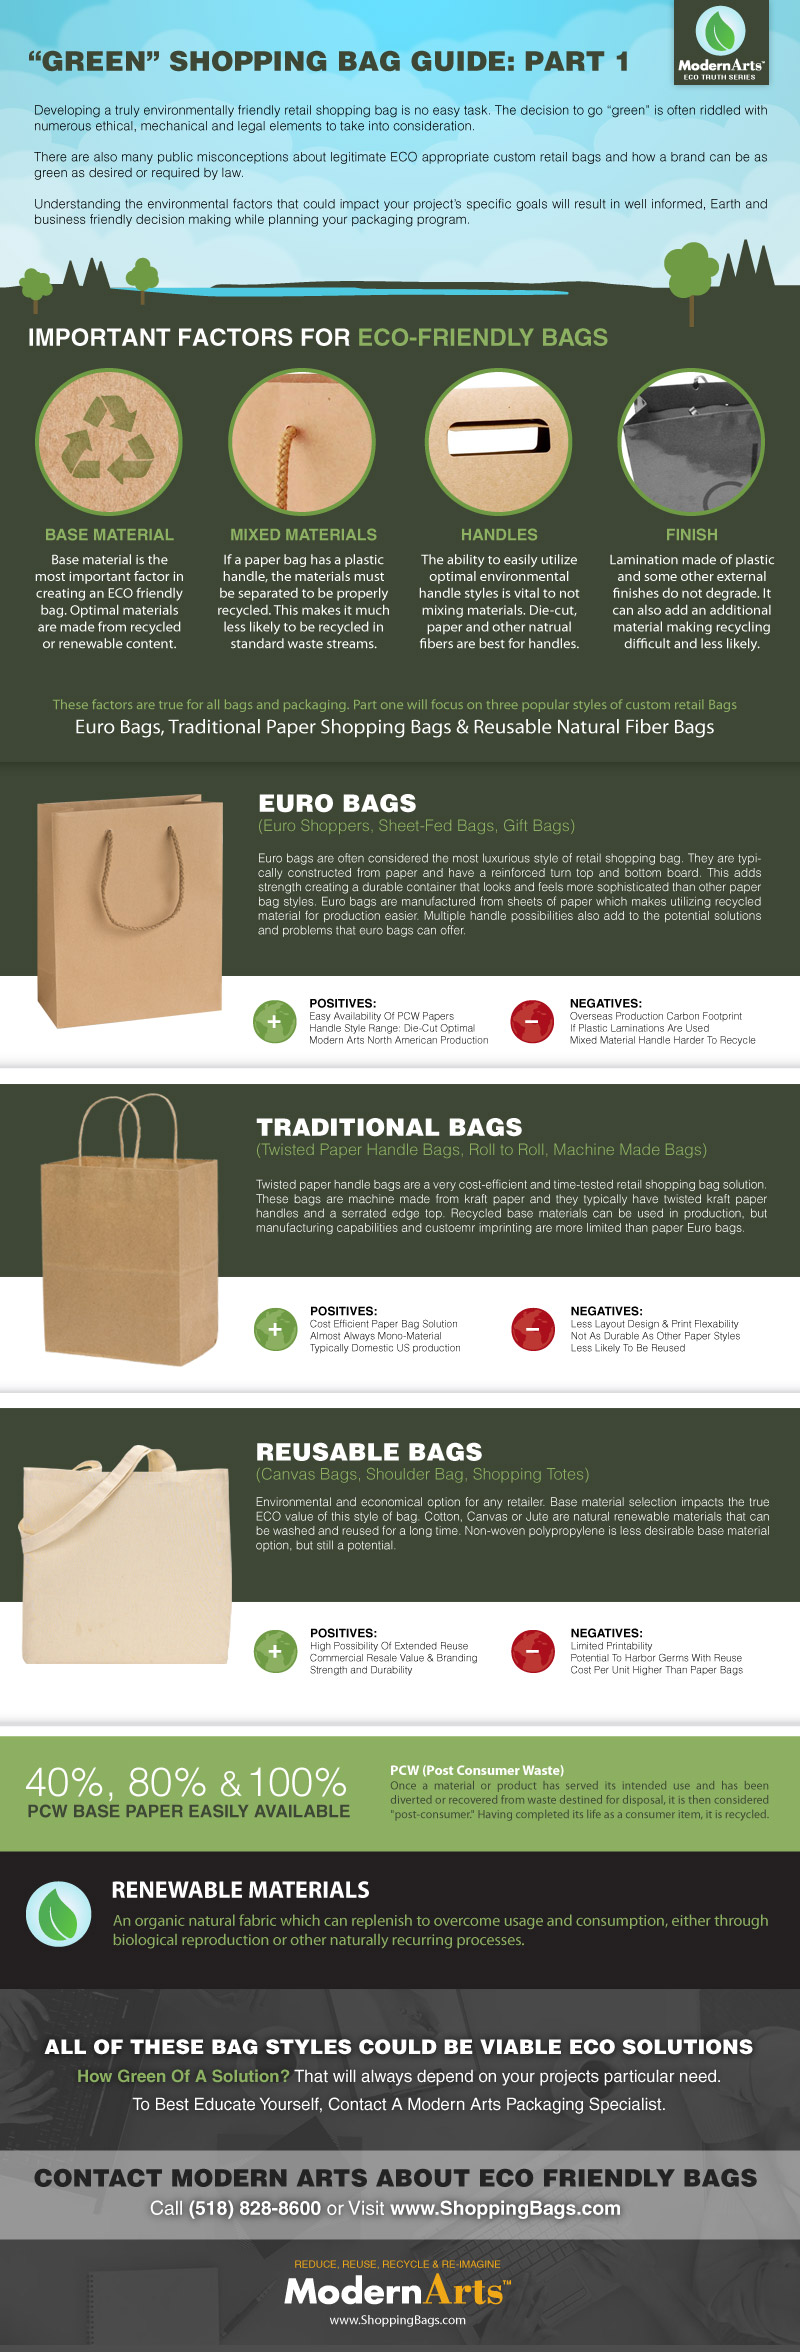 green eco friendly custom retail bags infographic